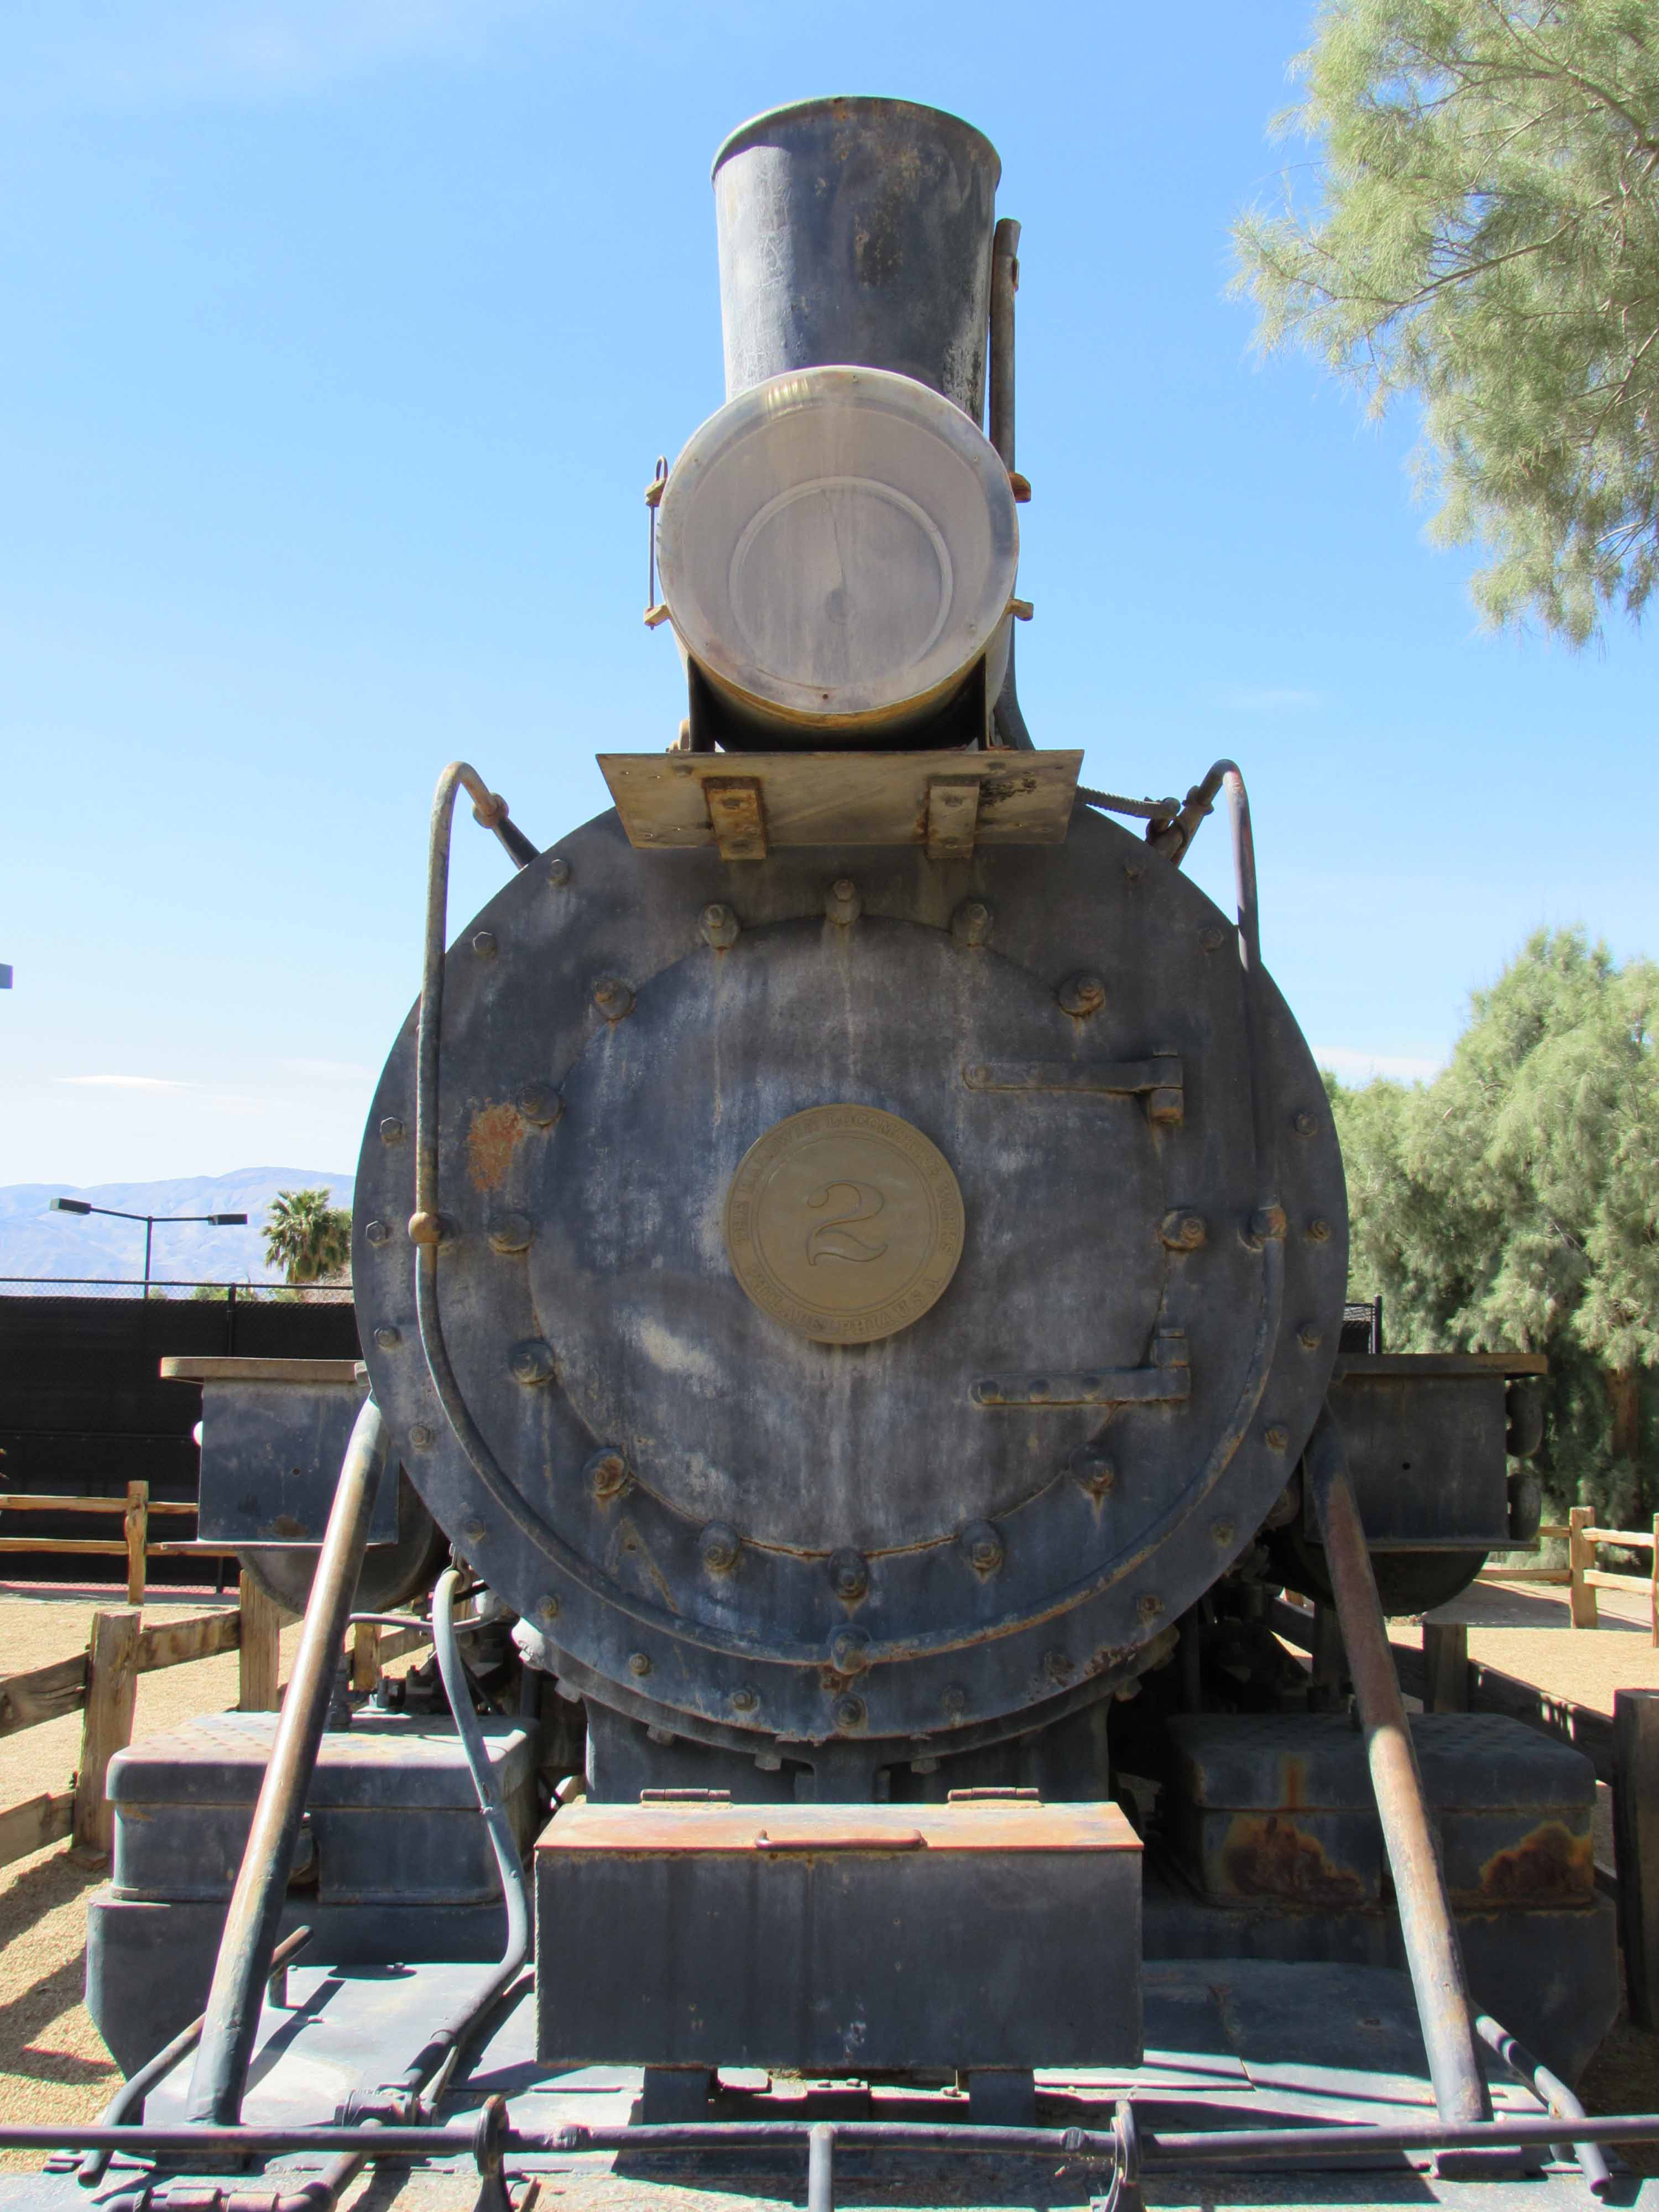 One of Trains on Display at Borax Museum